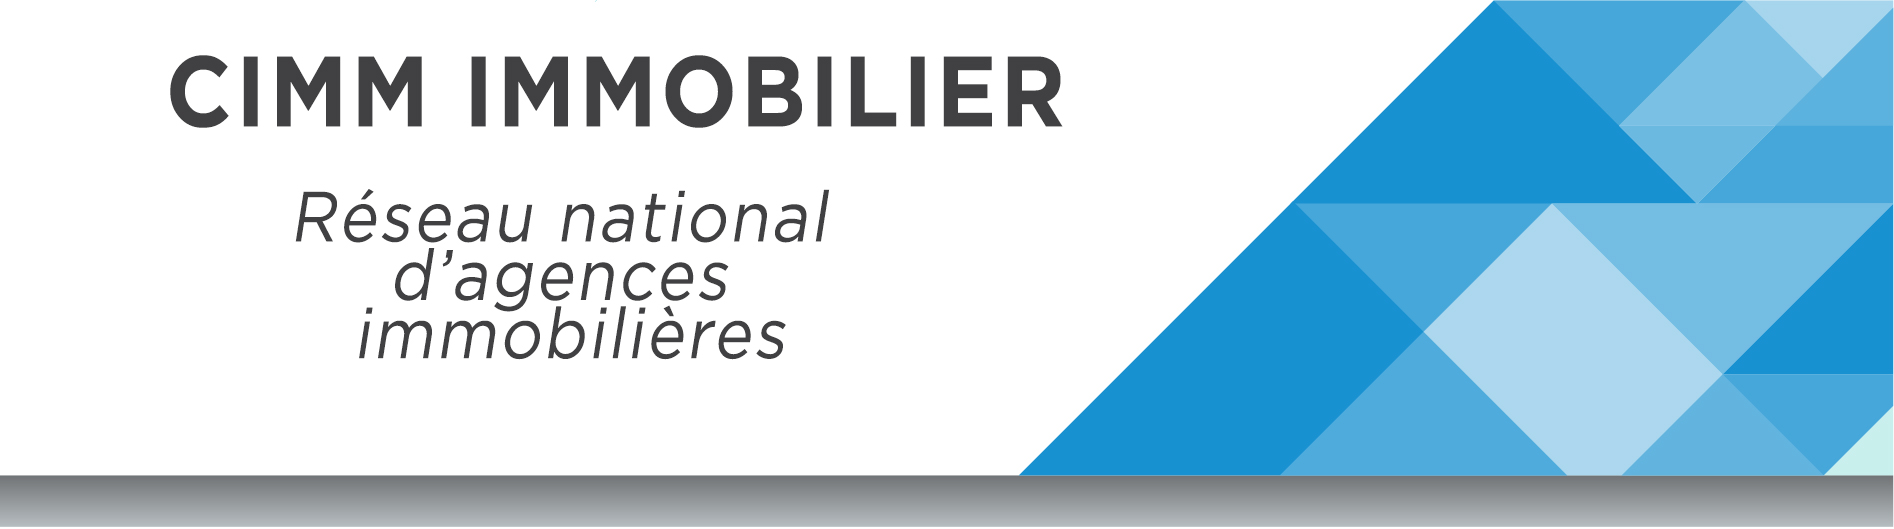 reconversion professionnelle immobilier